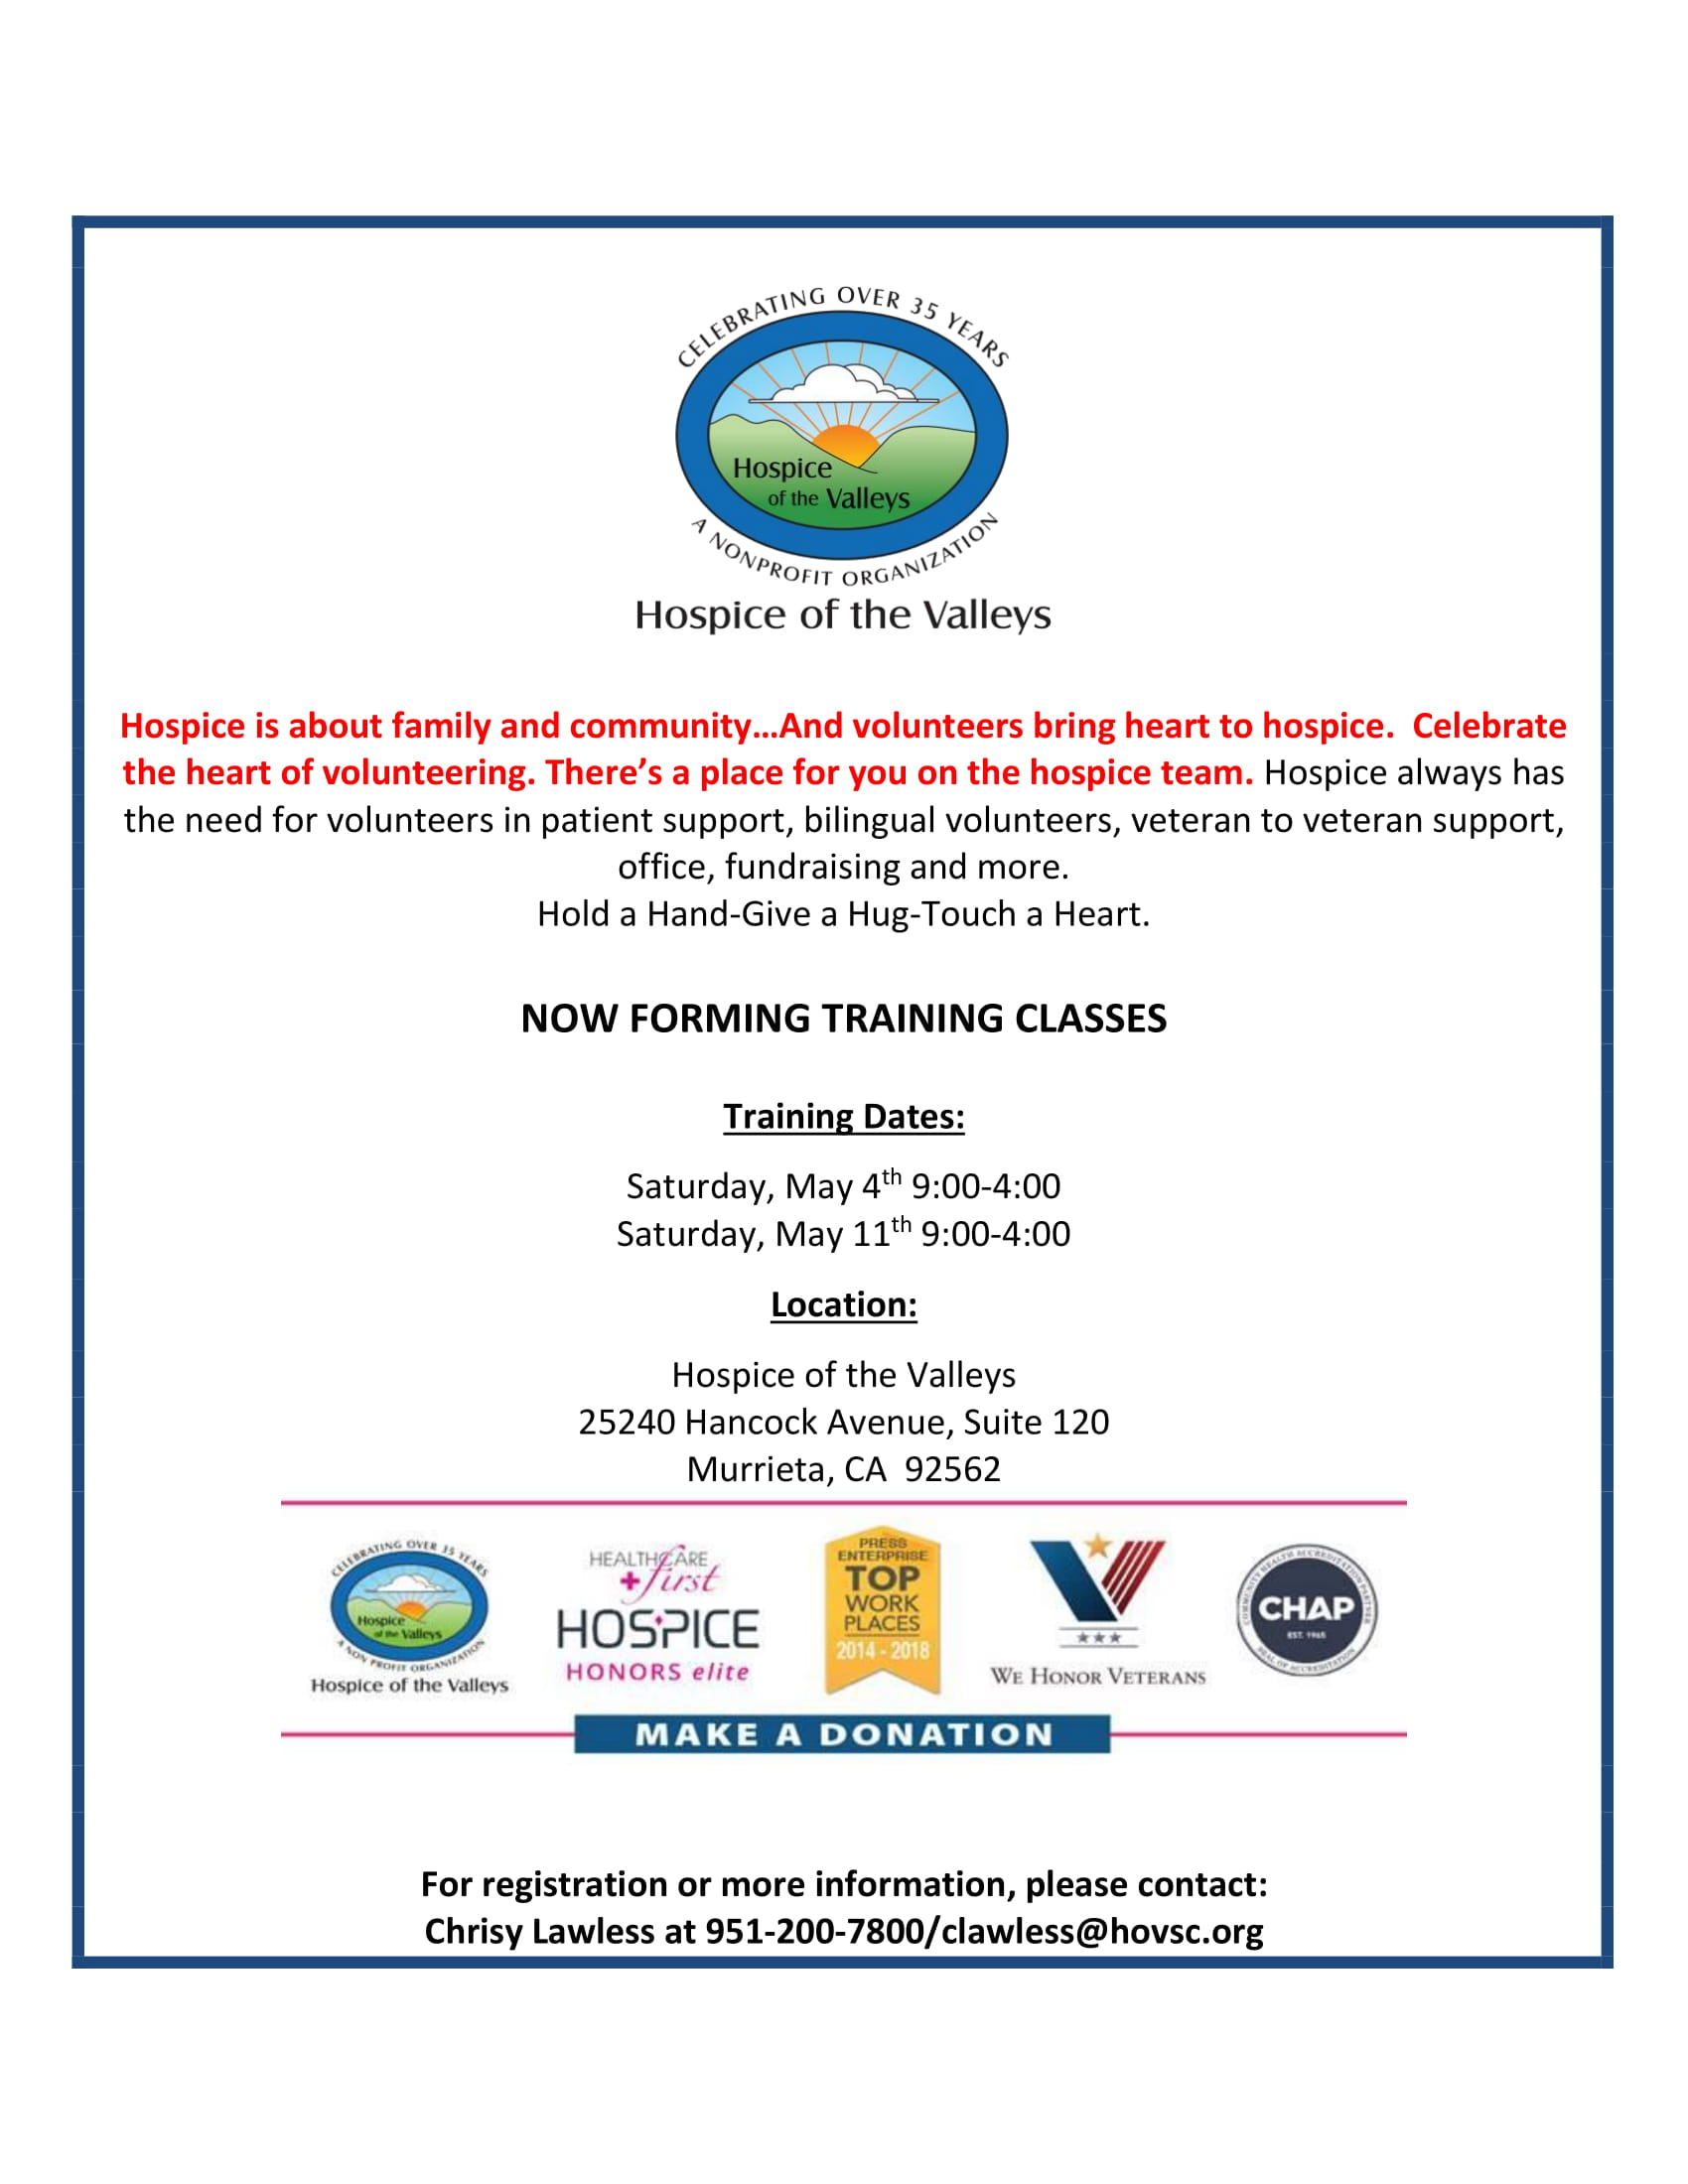 Hospice of the Valley-Training Classes for Volunteers